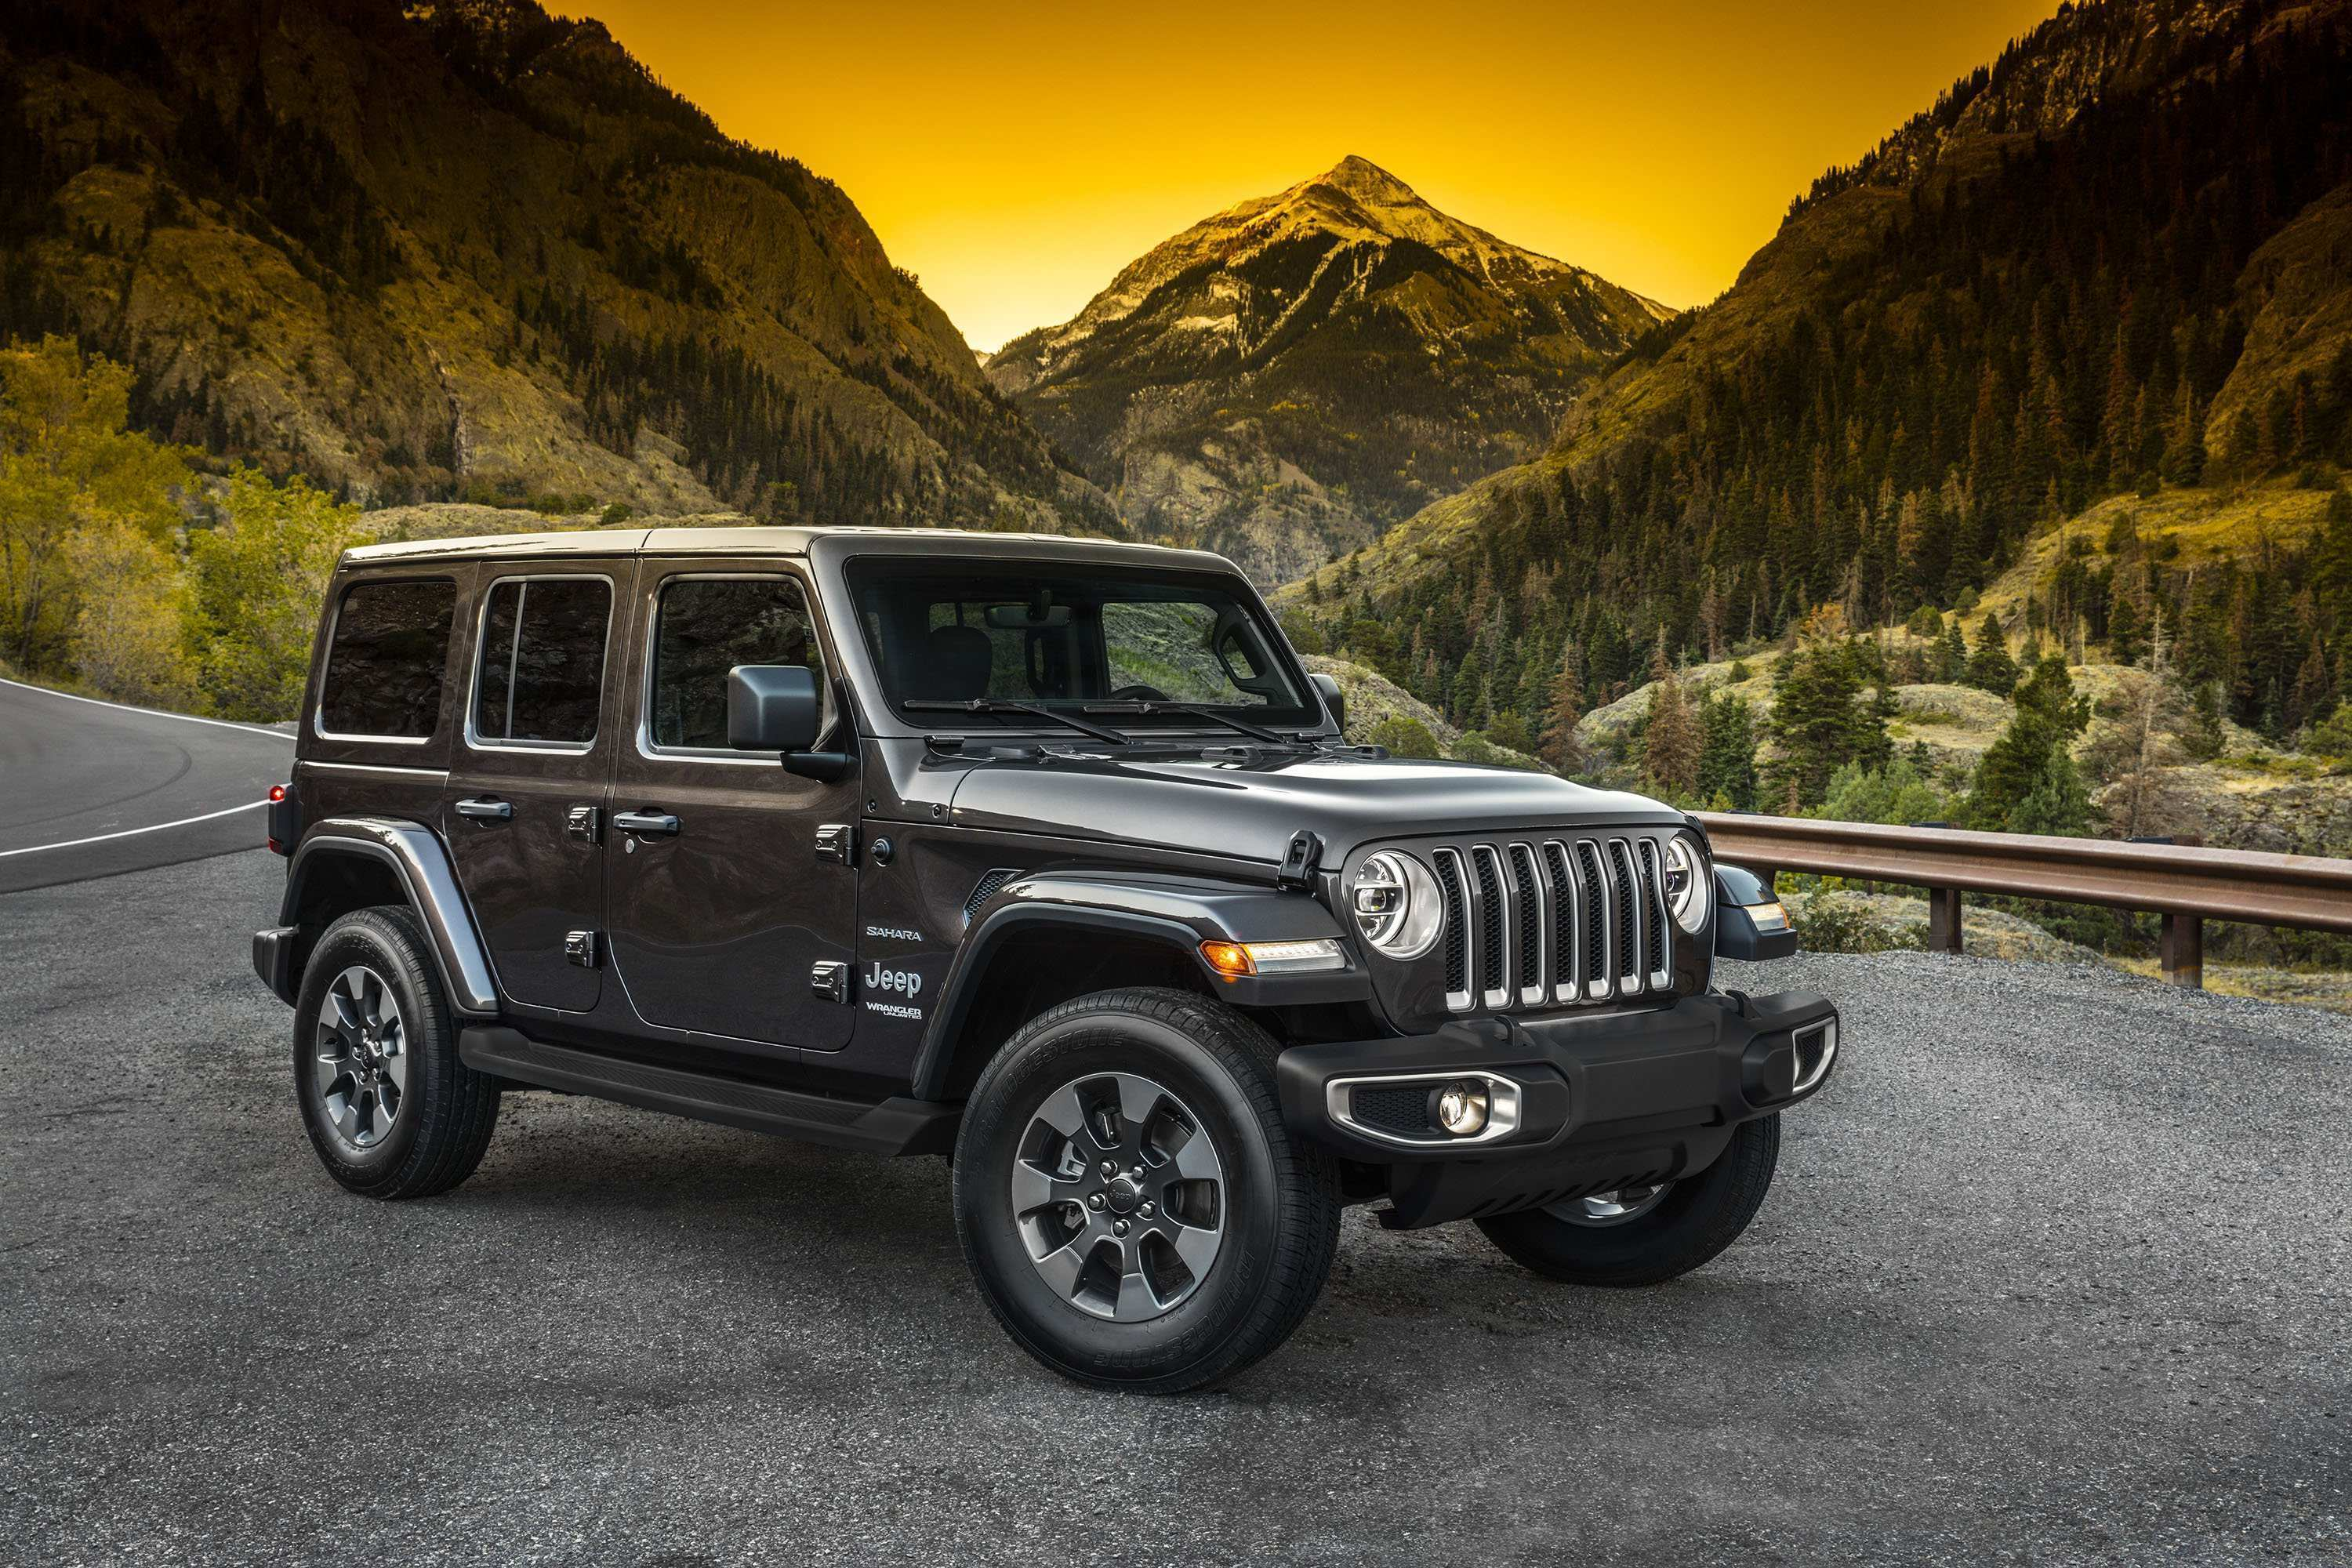 78 Best Jeep Patriot 2020 Rumors